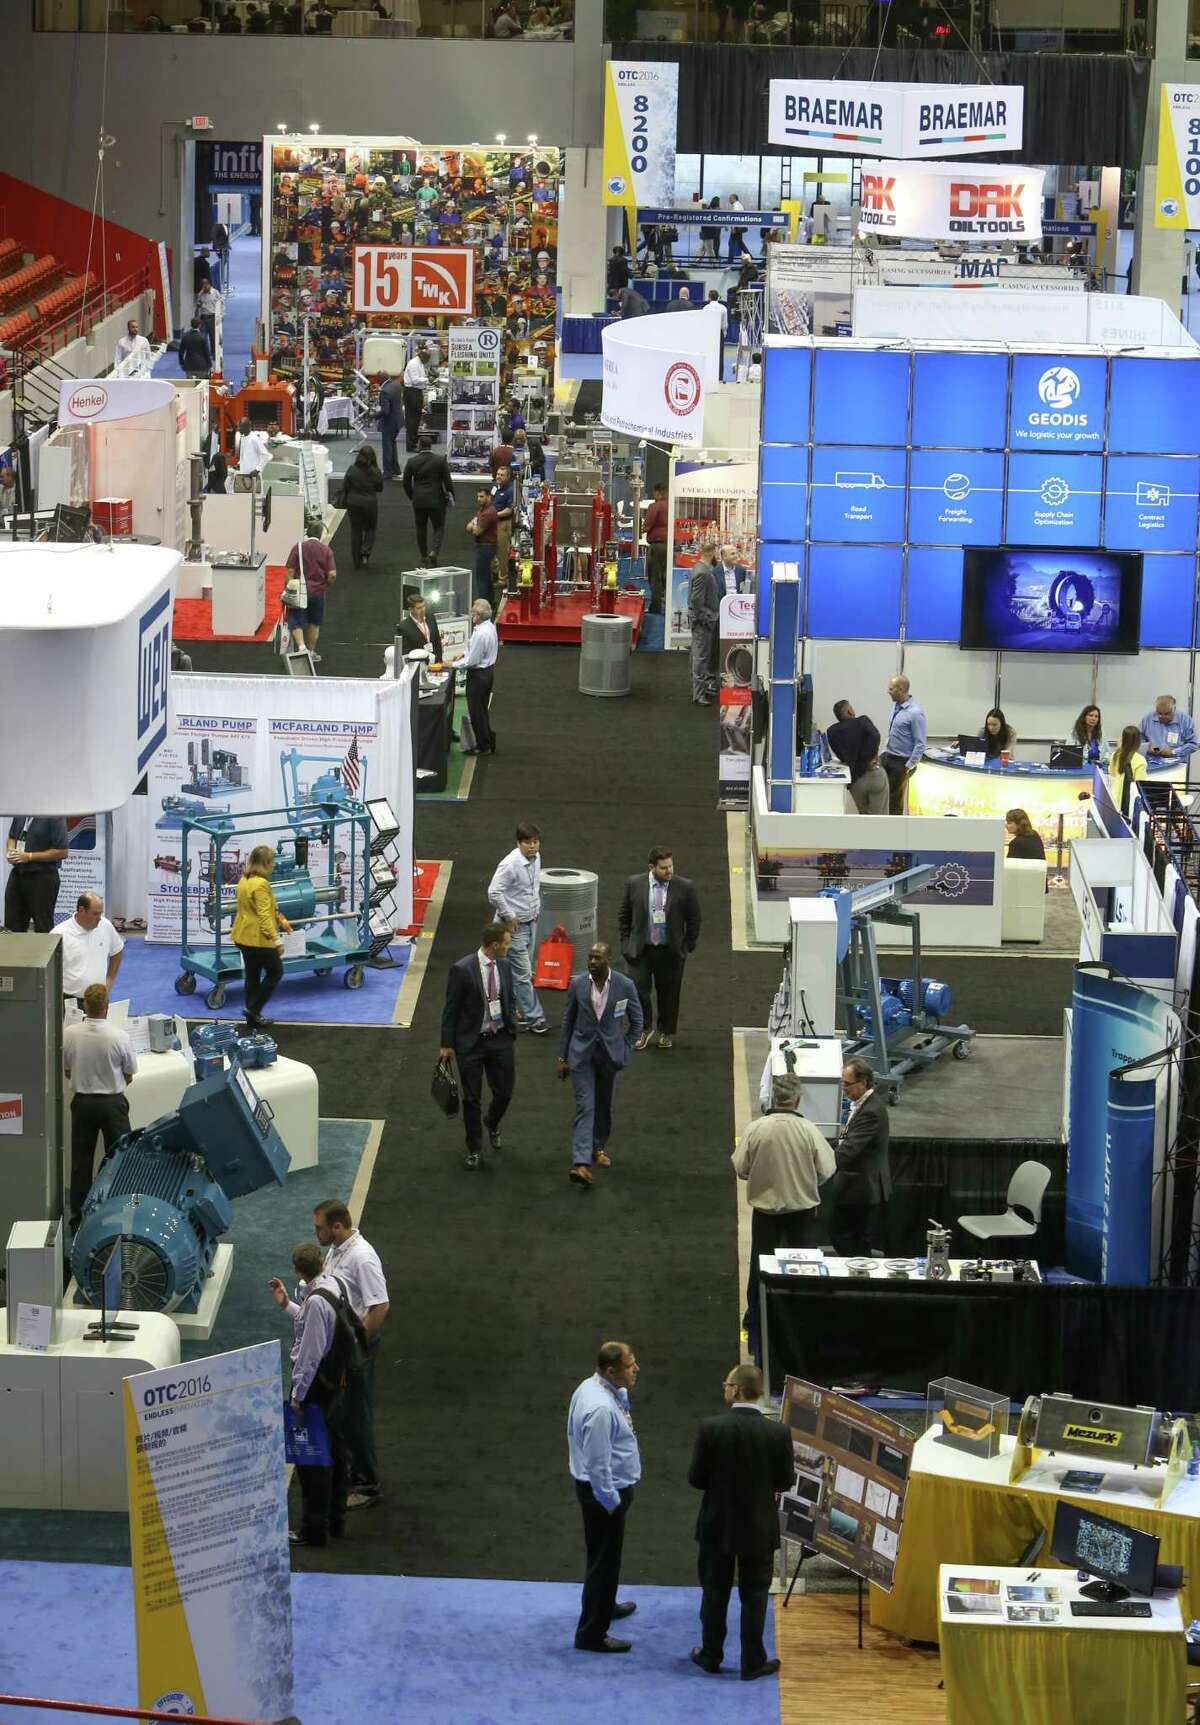 The turnout was light Monday at the Offshore Technology Conference at NRG Park. Conference organizers are hosting training sessions for those attendees who are seeking jobs.